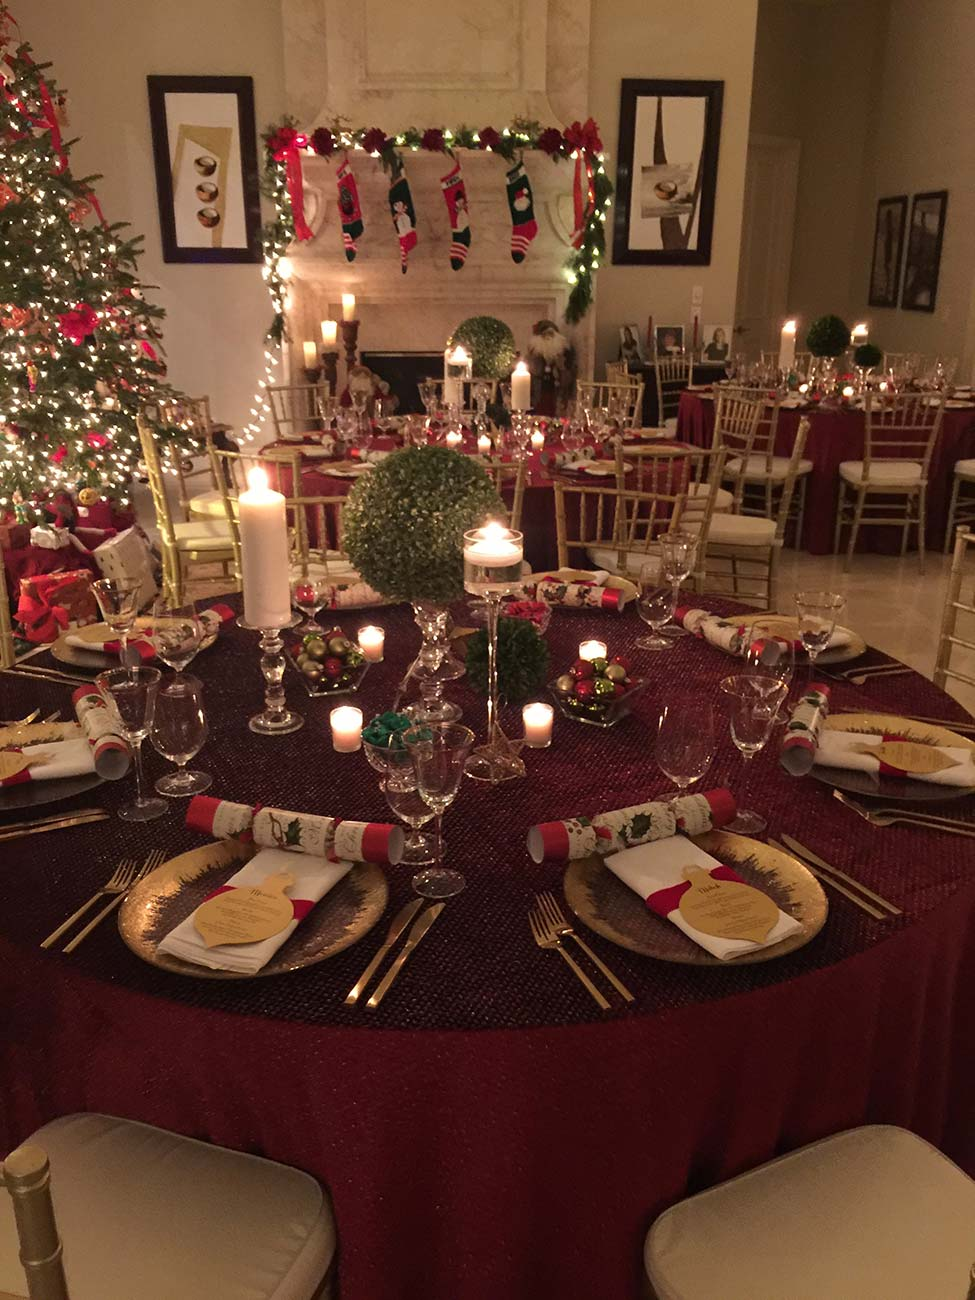 Tabletop Christmas dinner design with silverware, dinnerware and a Christmas tree in the background